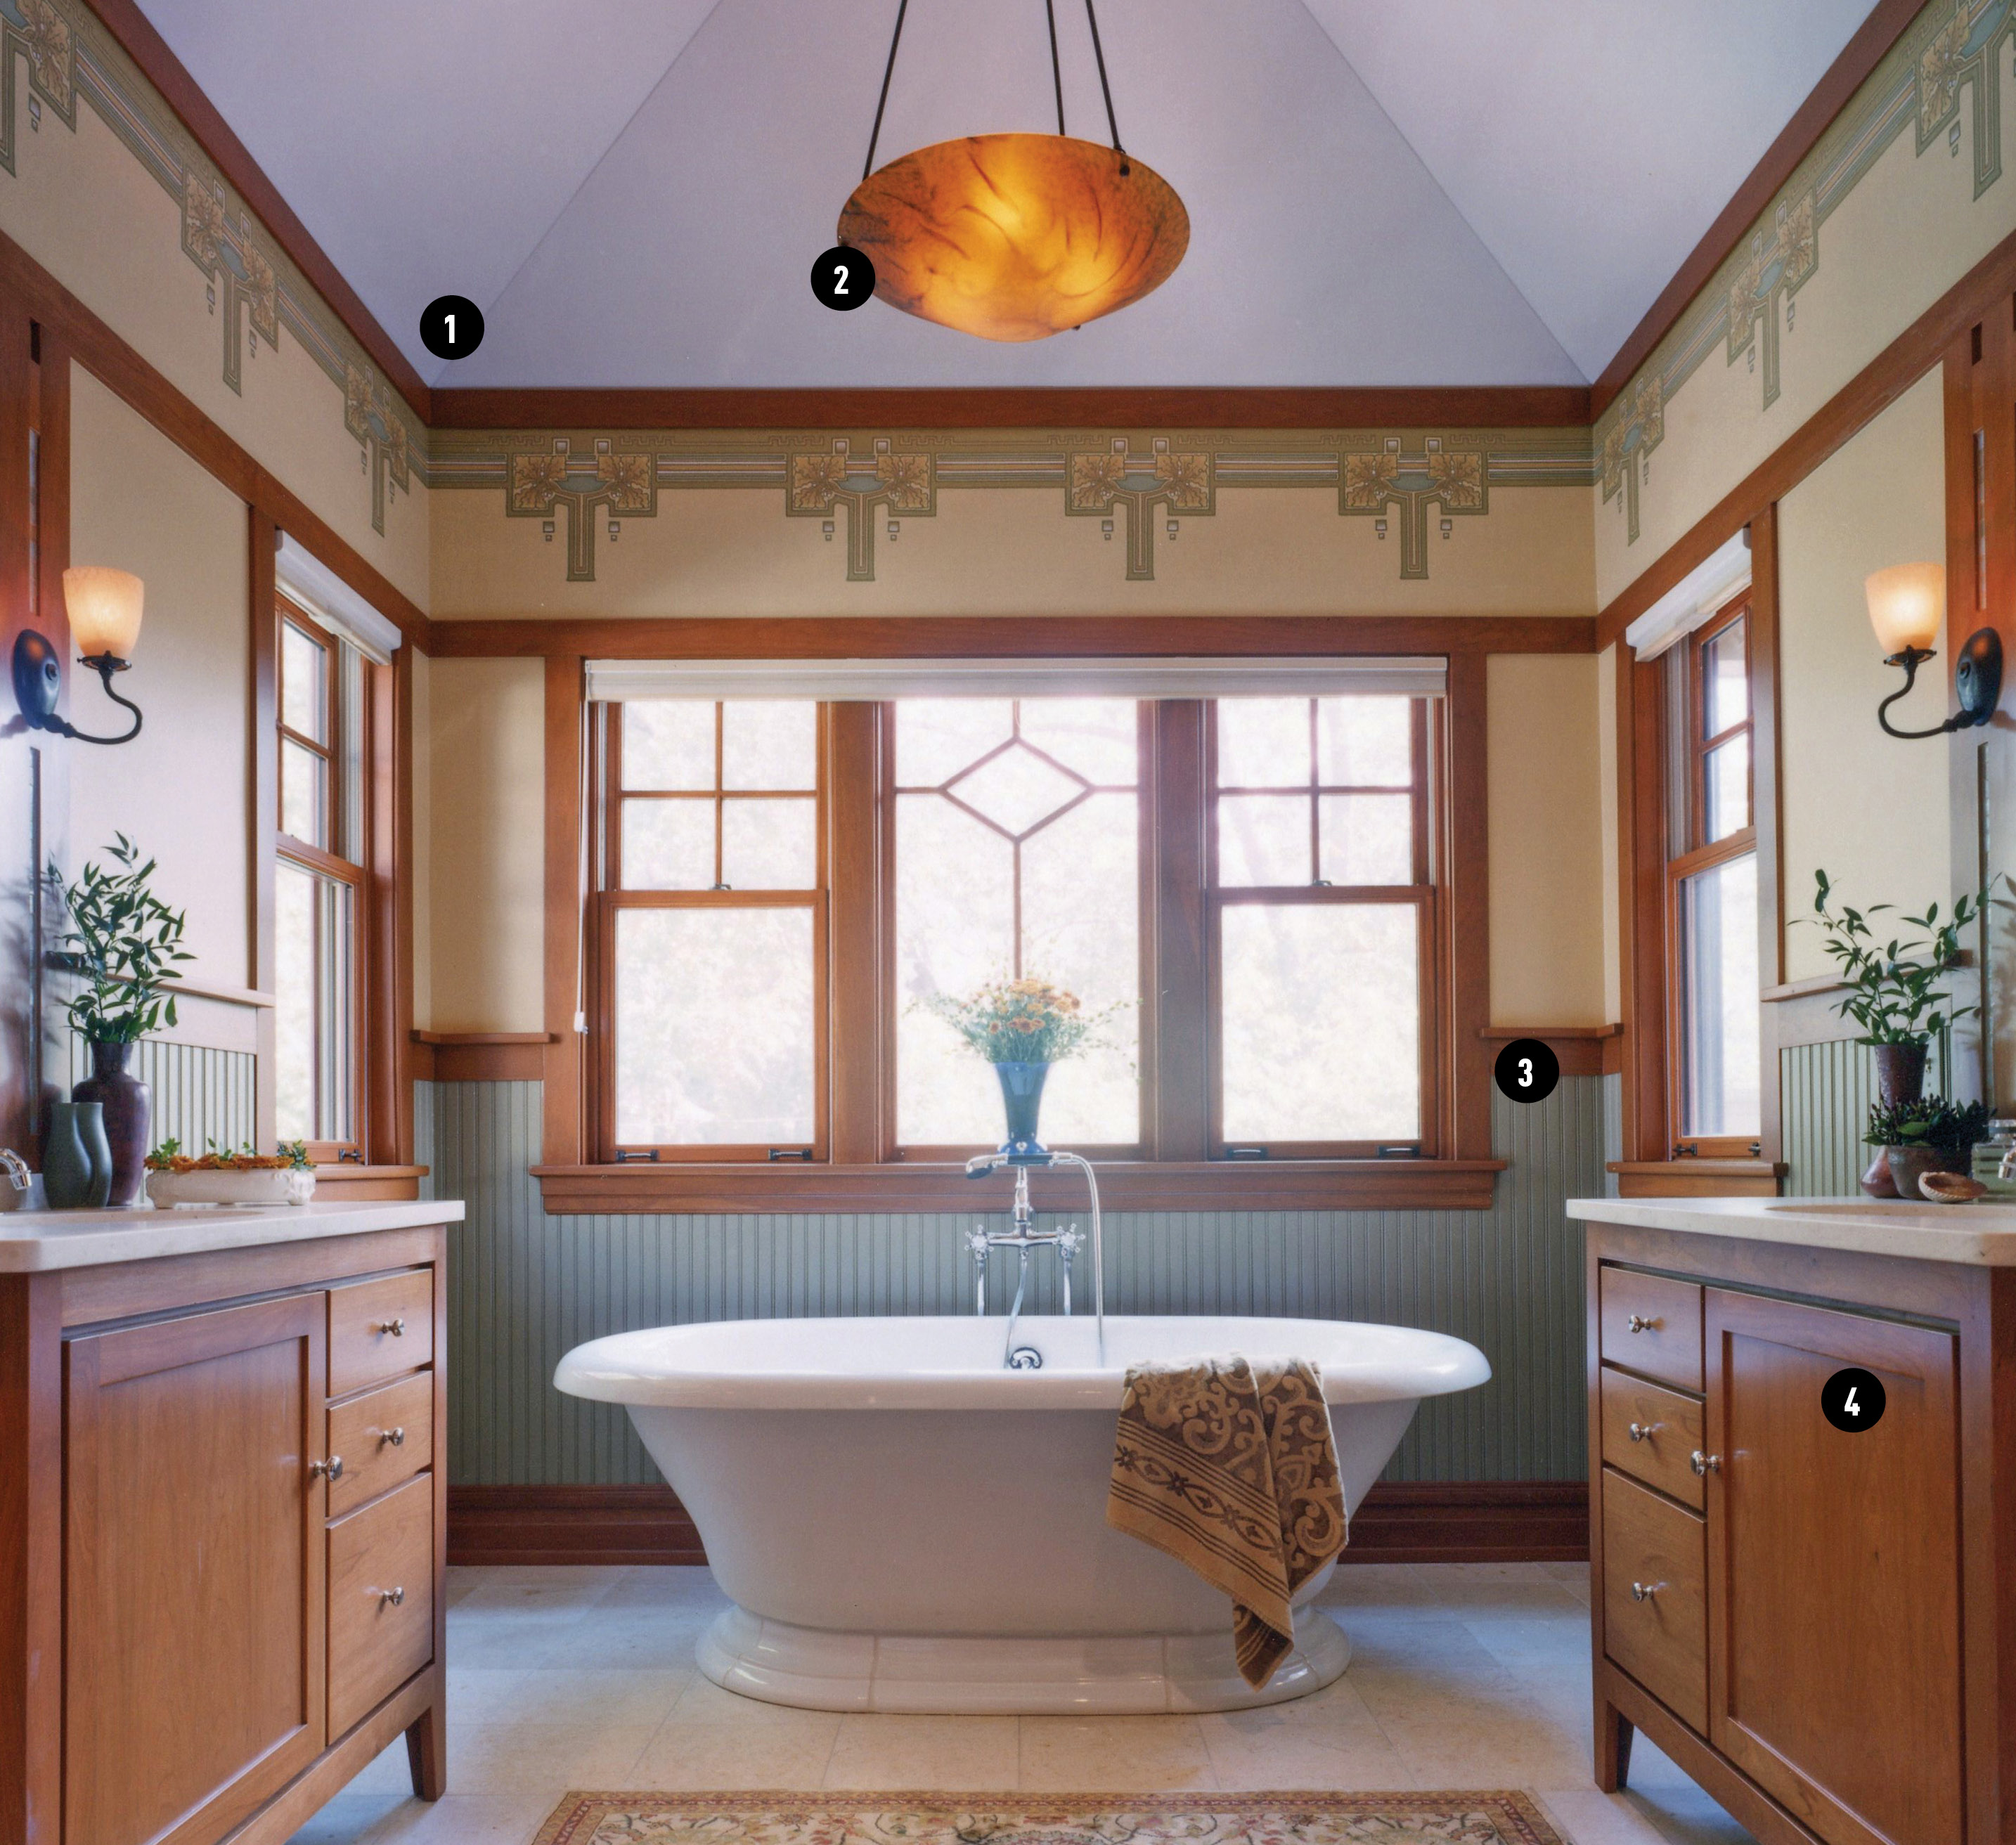 Arts & Crafts-era bathroom